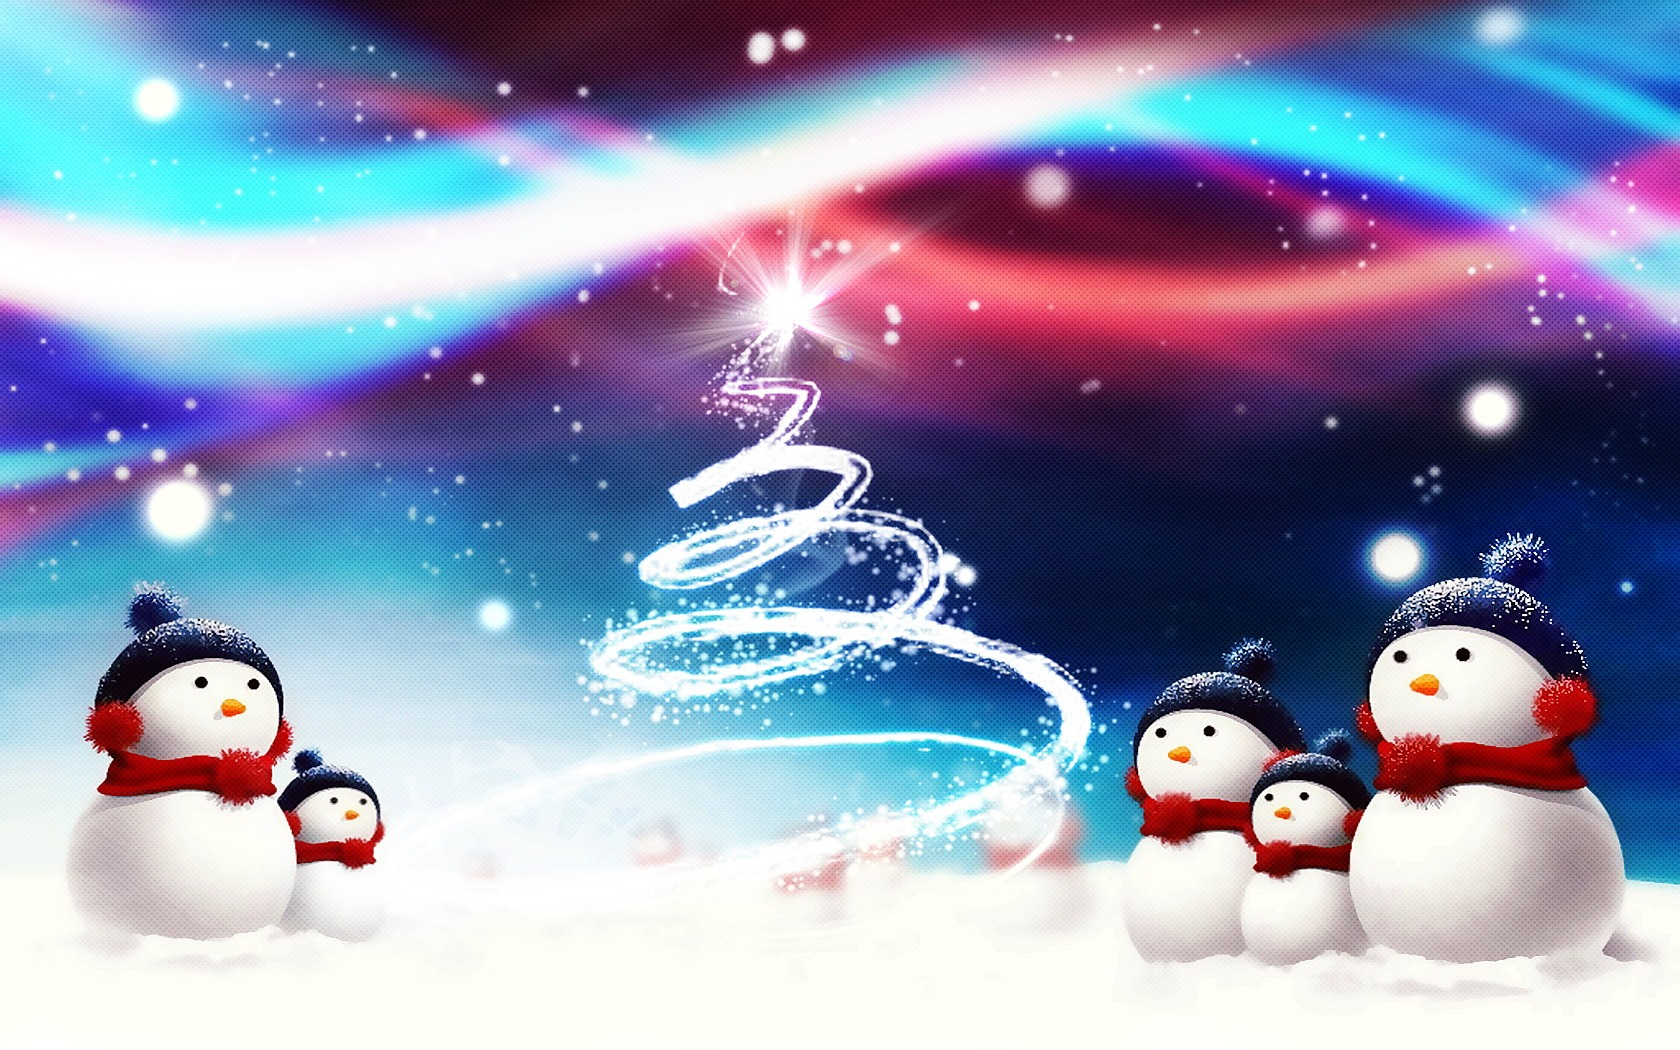 animated christmas wallpaper 2 - Christmas Animated Images